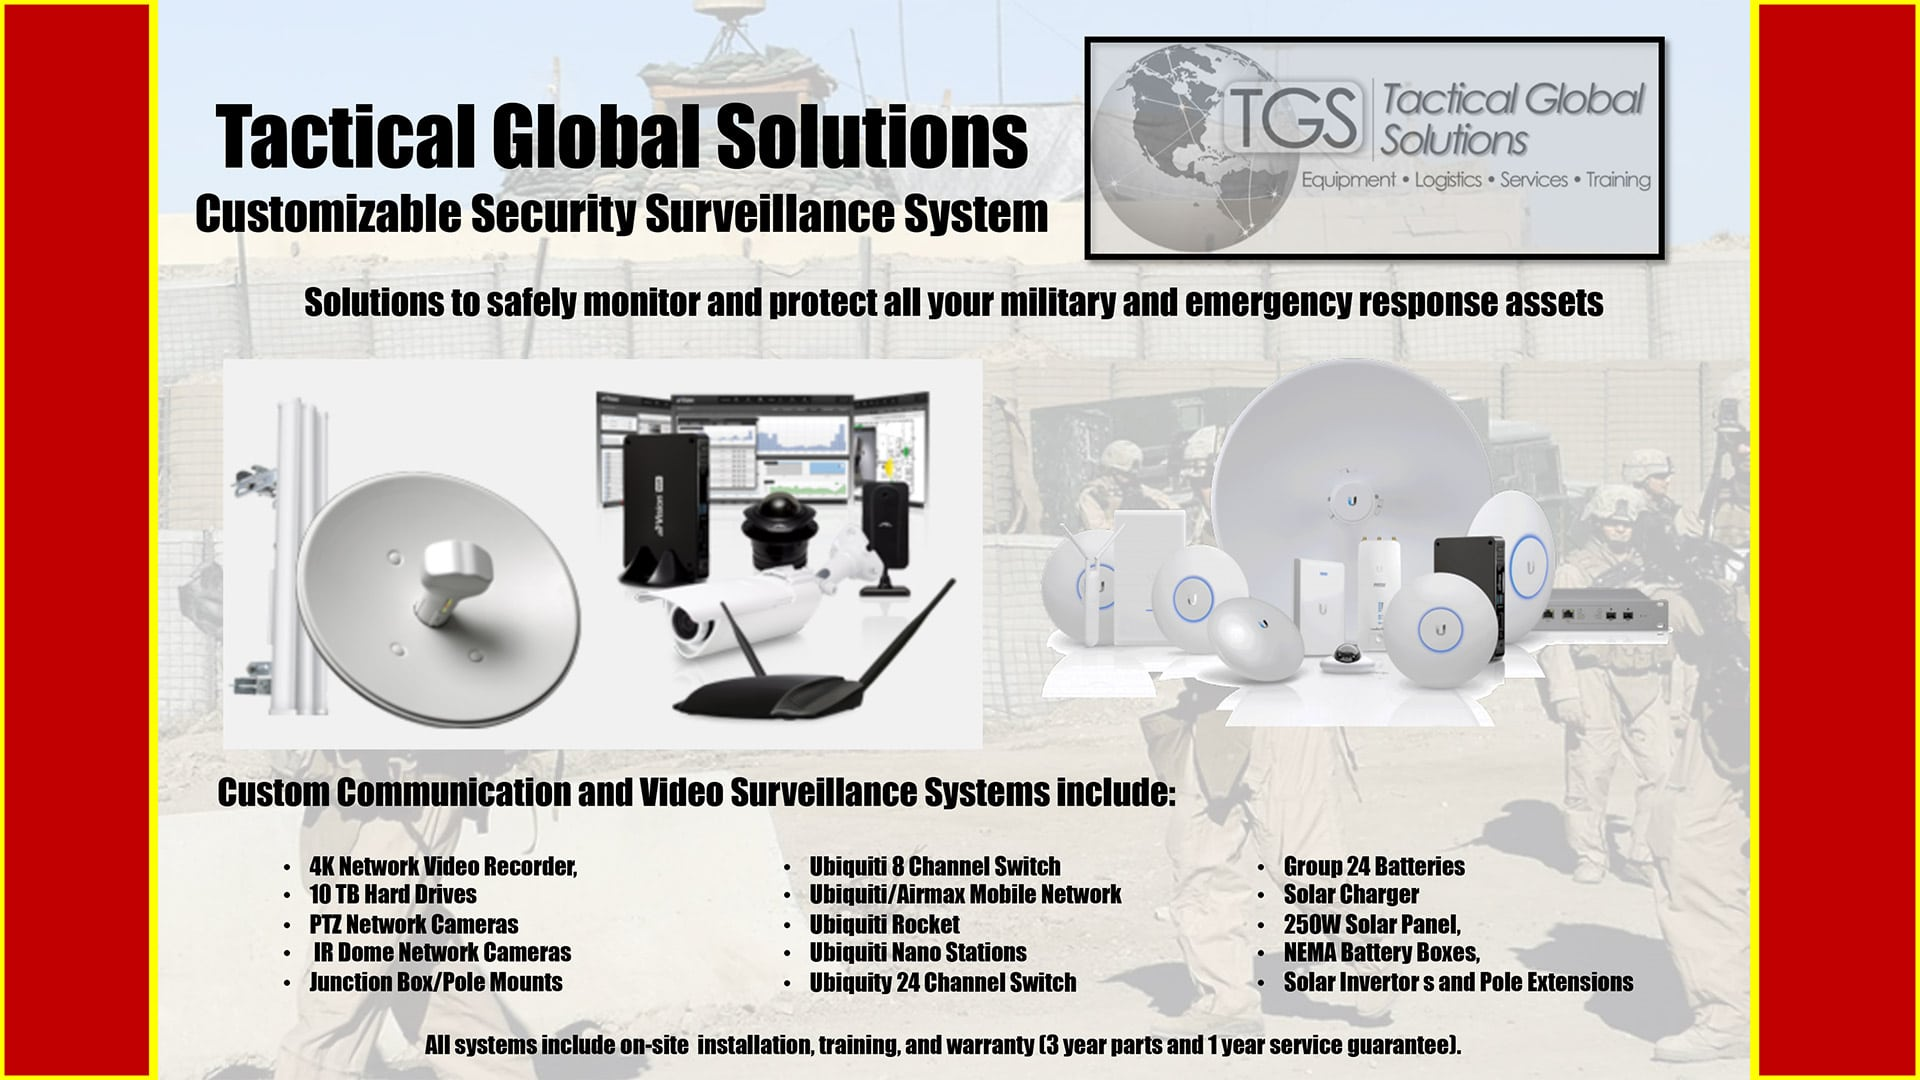 TGS Customizable Security Surveillance System